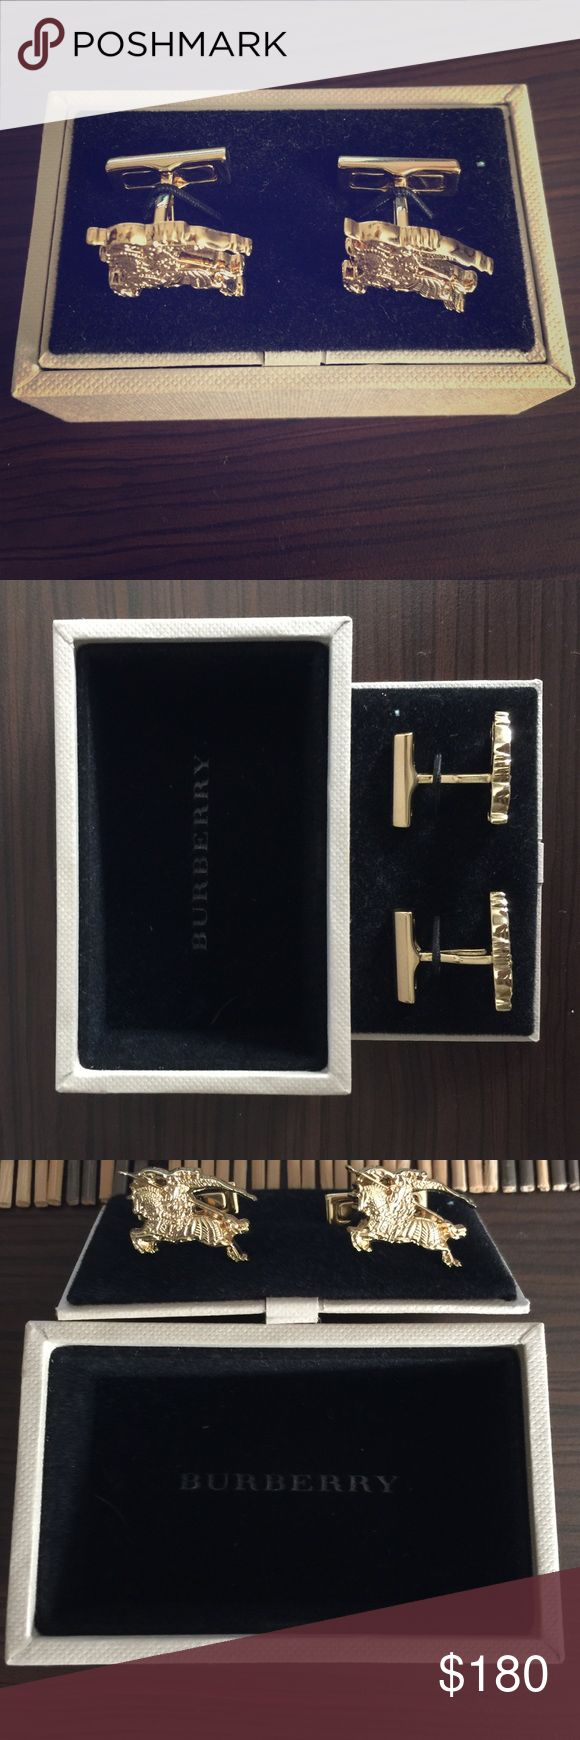 Gold Burberry Men's Equestrian Knight Cuff Links Brand new Burberry cufflinks. One owner. Worn once. Burberry Accessories Cuff Links